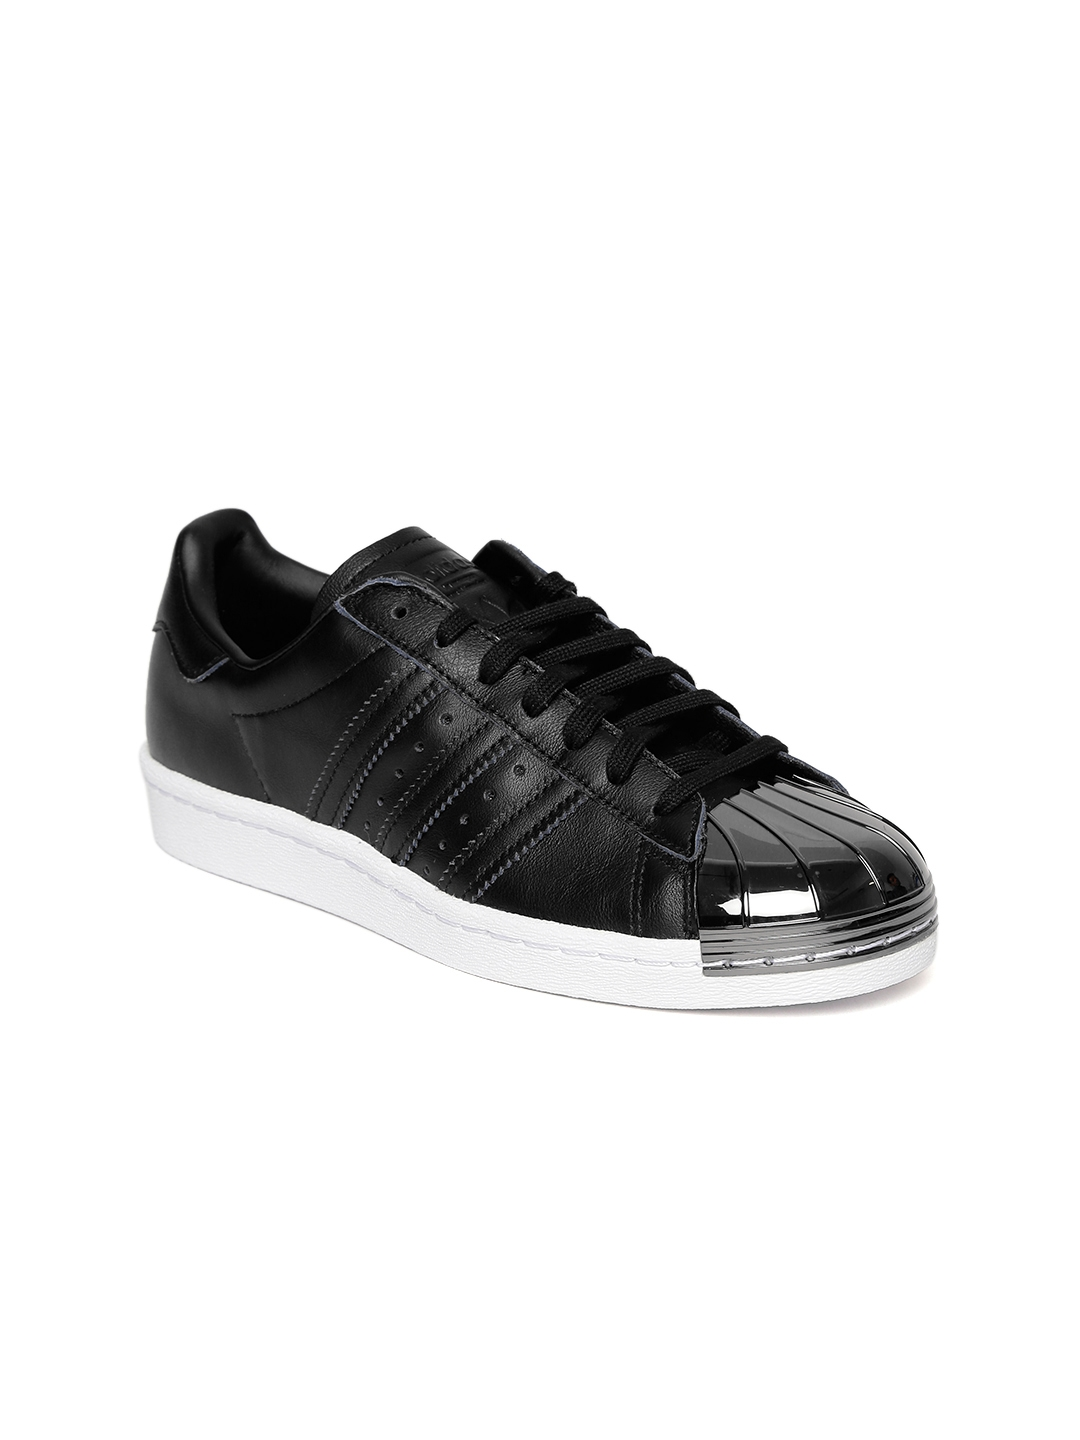 a59d4531765ae5 Buy ADIDAS Originals Women Black Superstar 80S MT Leather Sneakers ...